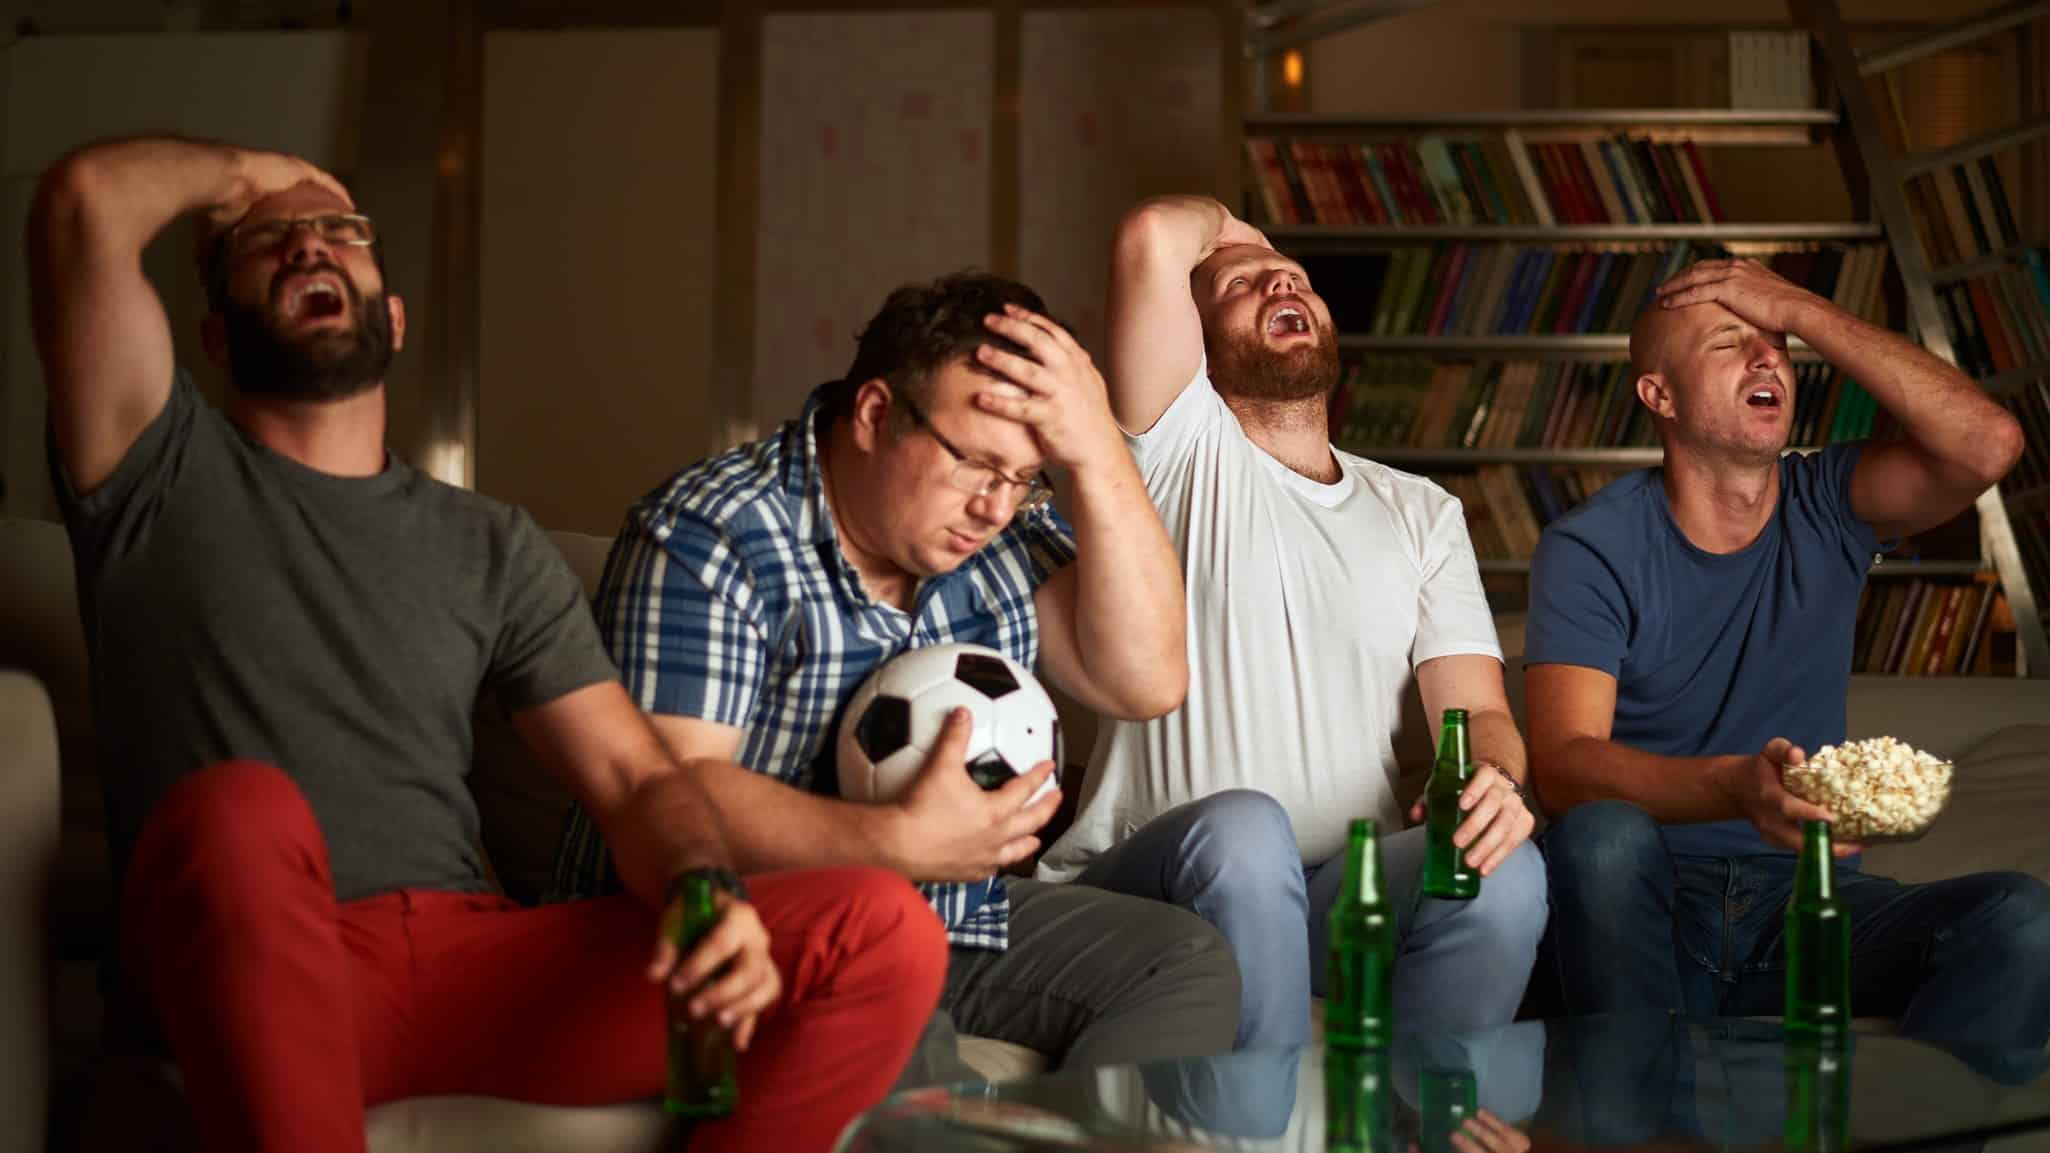 Four PointsBet customers and football fans put heads in hands and look disappointed while watching television